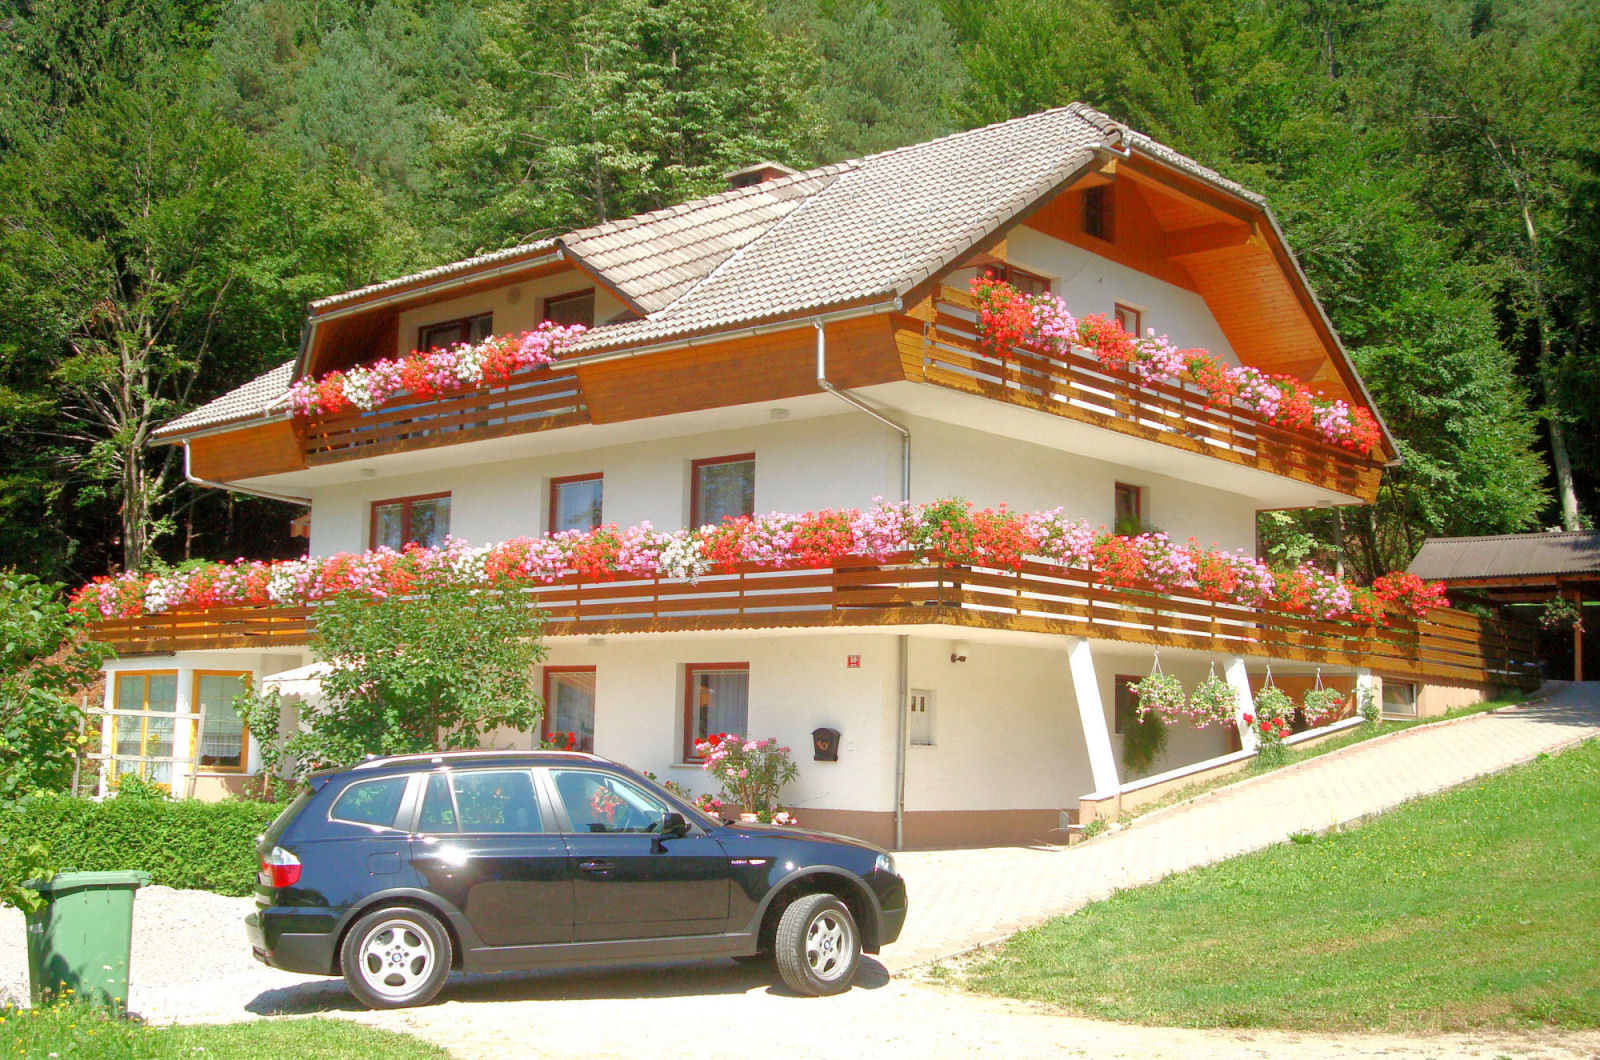 Probably the best accommodation near Bled - the Gorenjska region of Slovenia